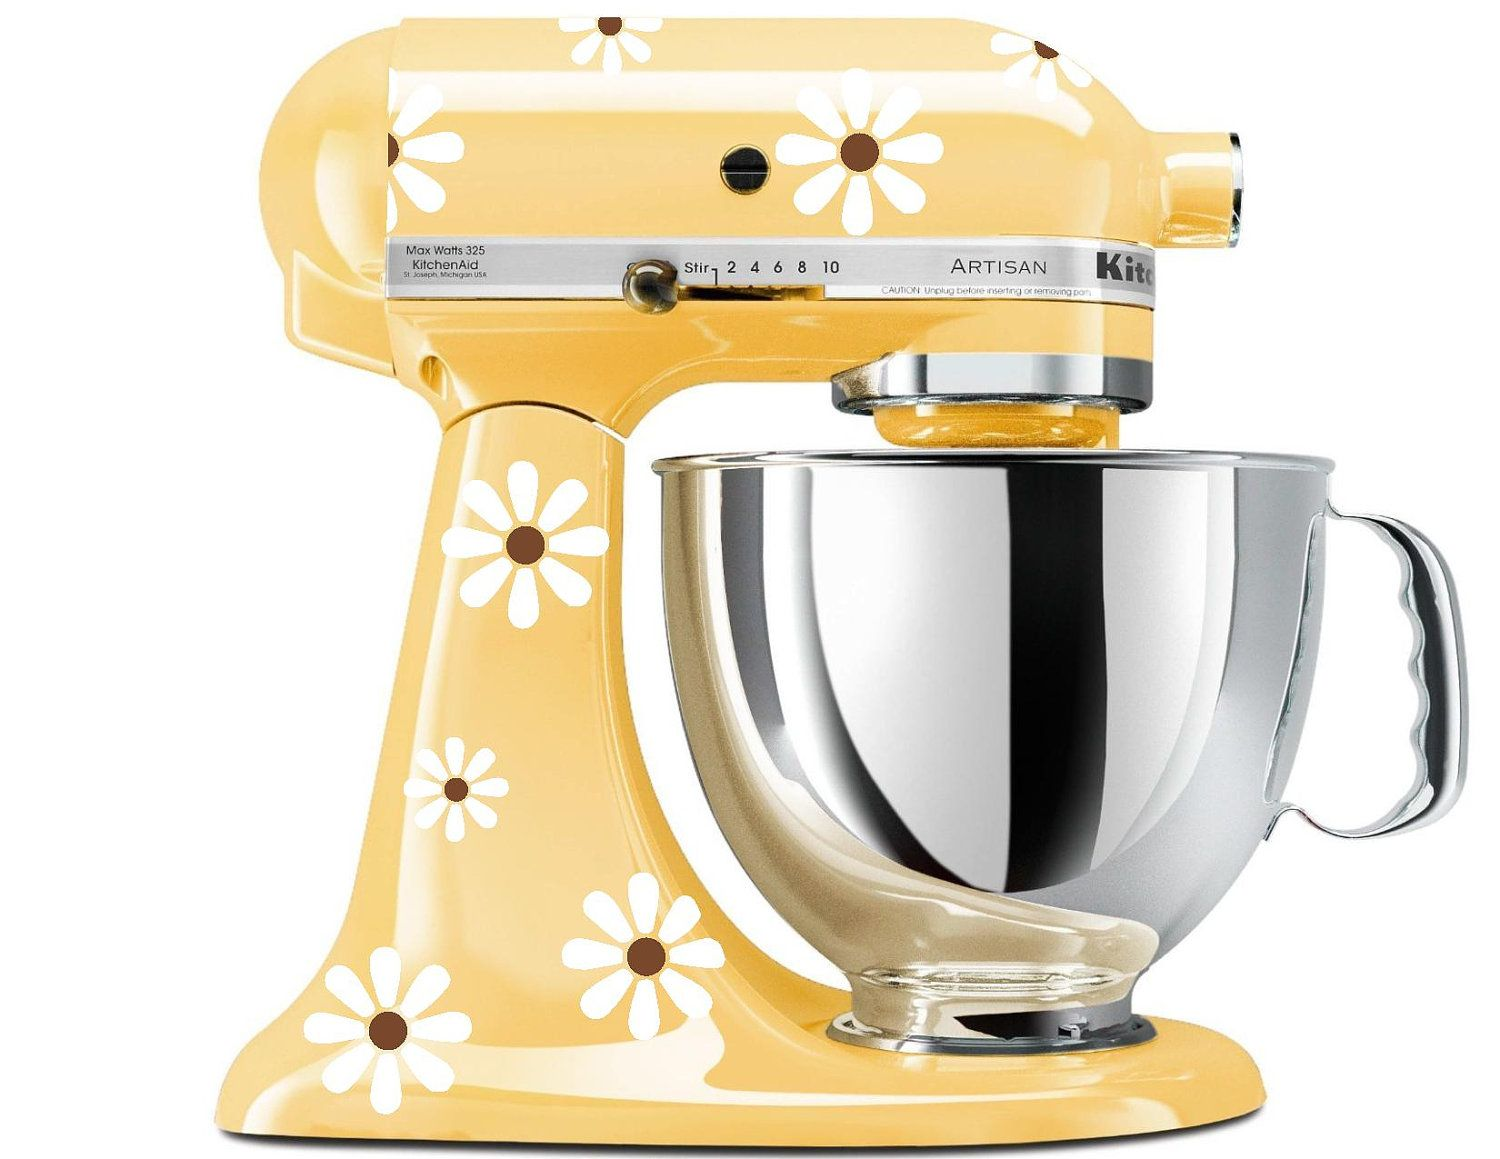 KitchenAid Stand Mixer Decal - Vinyl Sticker for Stand Up Mixer ...